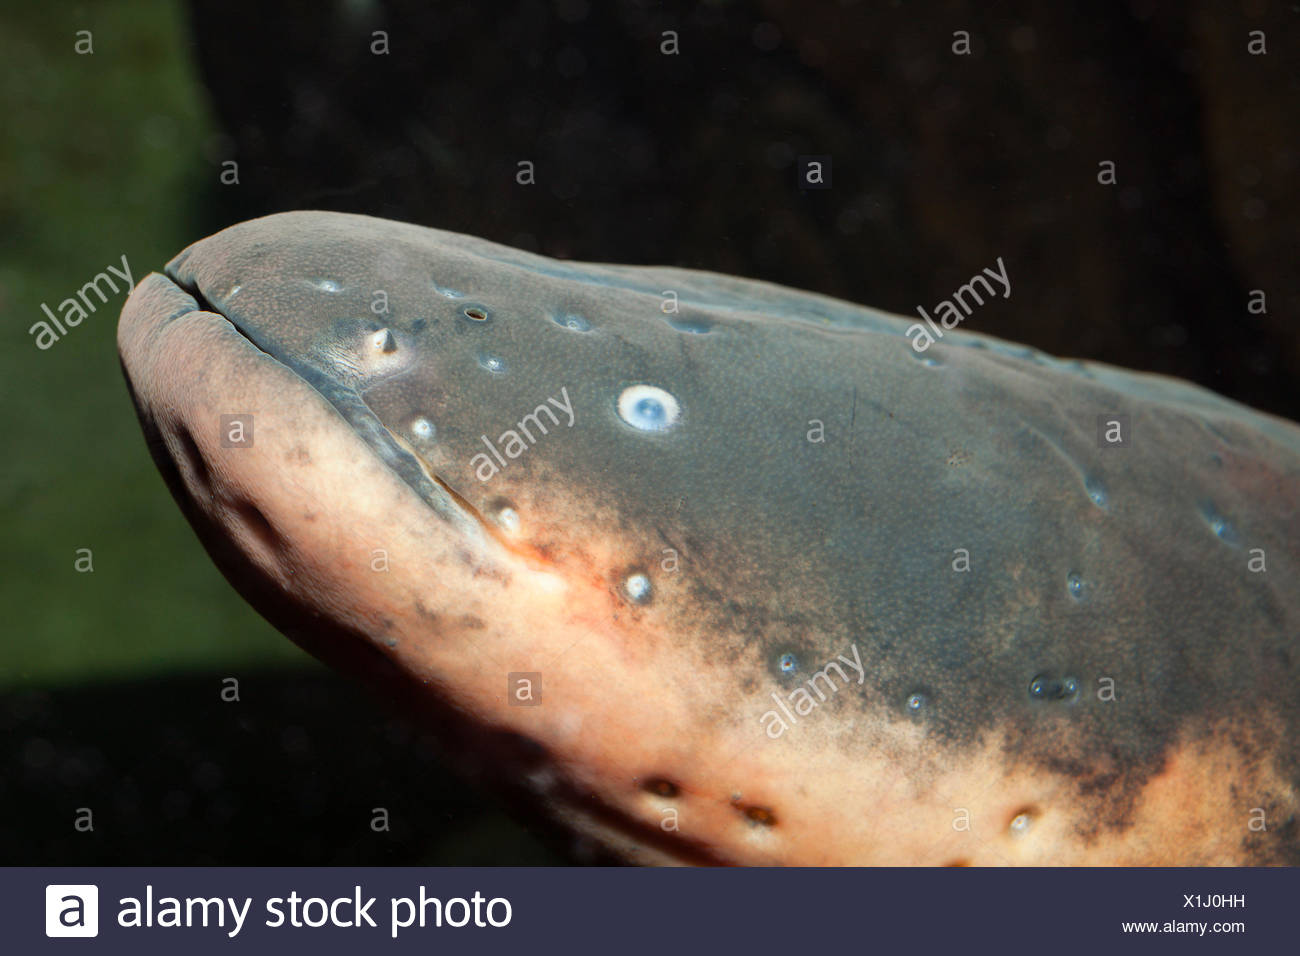 Electric Eel Stock Photos Amp Electric Eel Stock Images Alamy